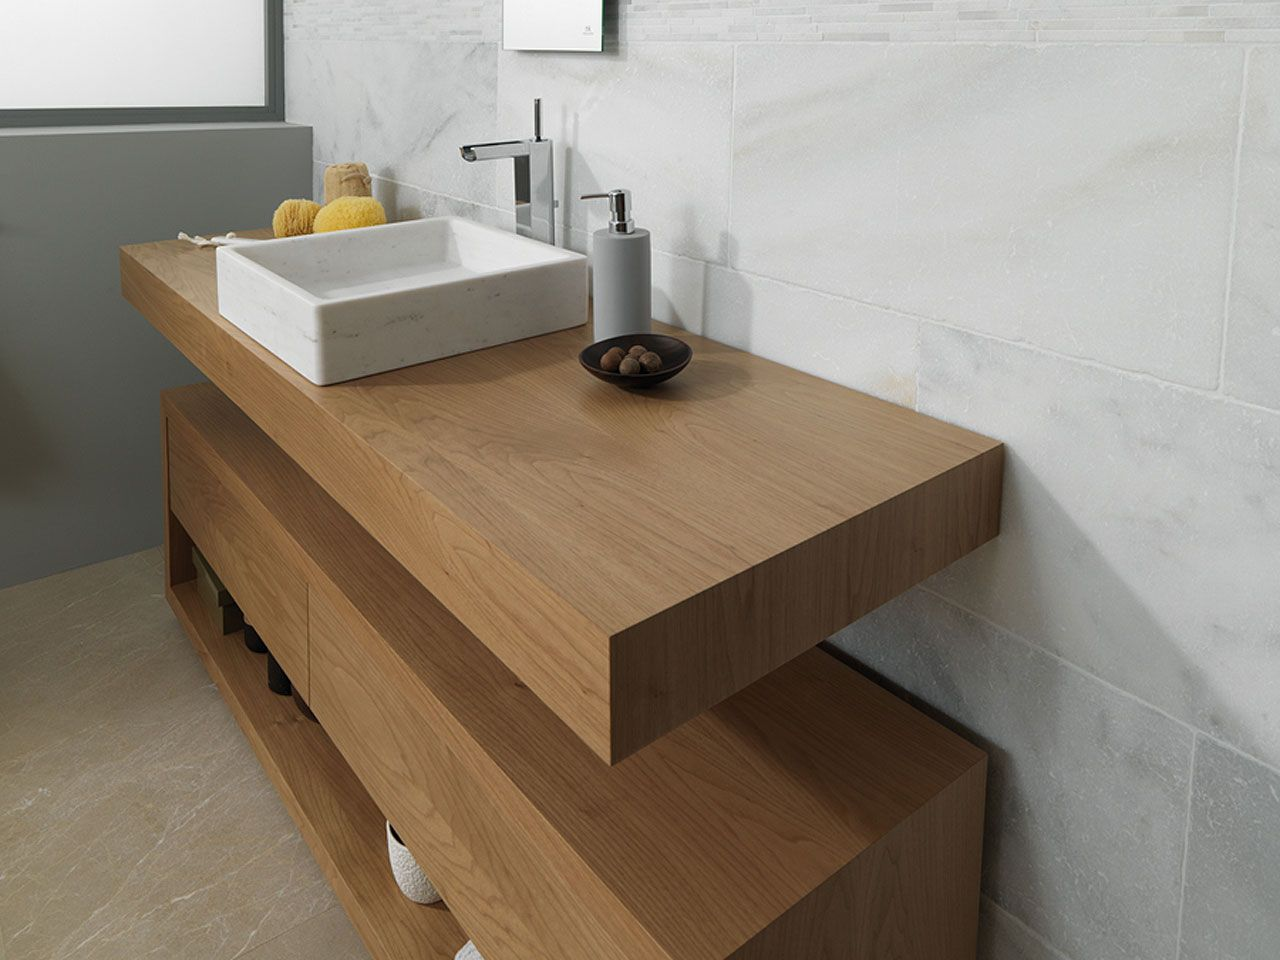 Porcelanosa Bathroom Accessories The Porcelanosa Group Has Offered Bathroom Equipment Solutions For